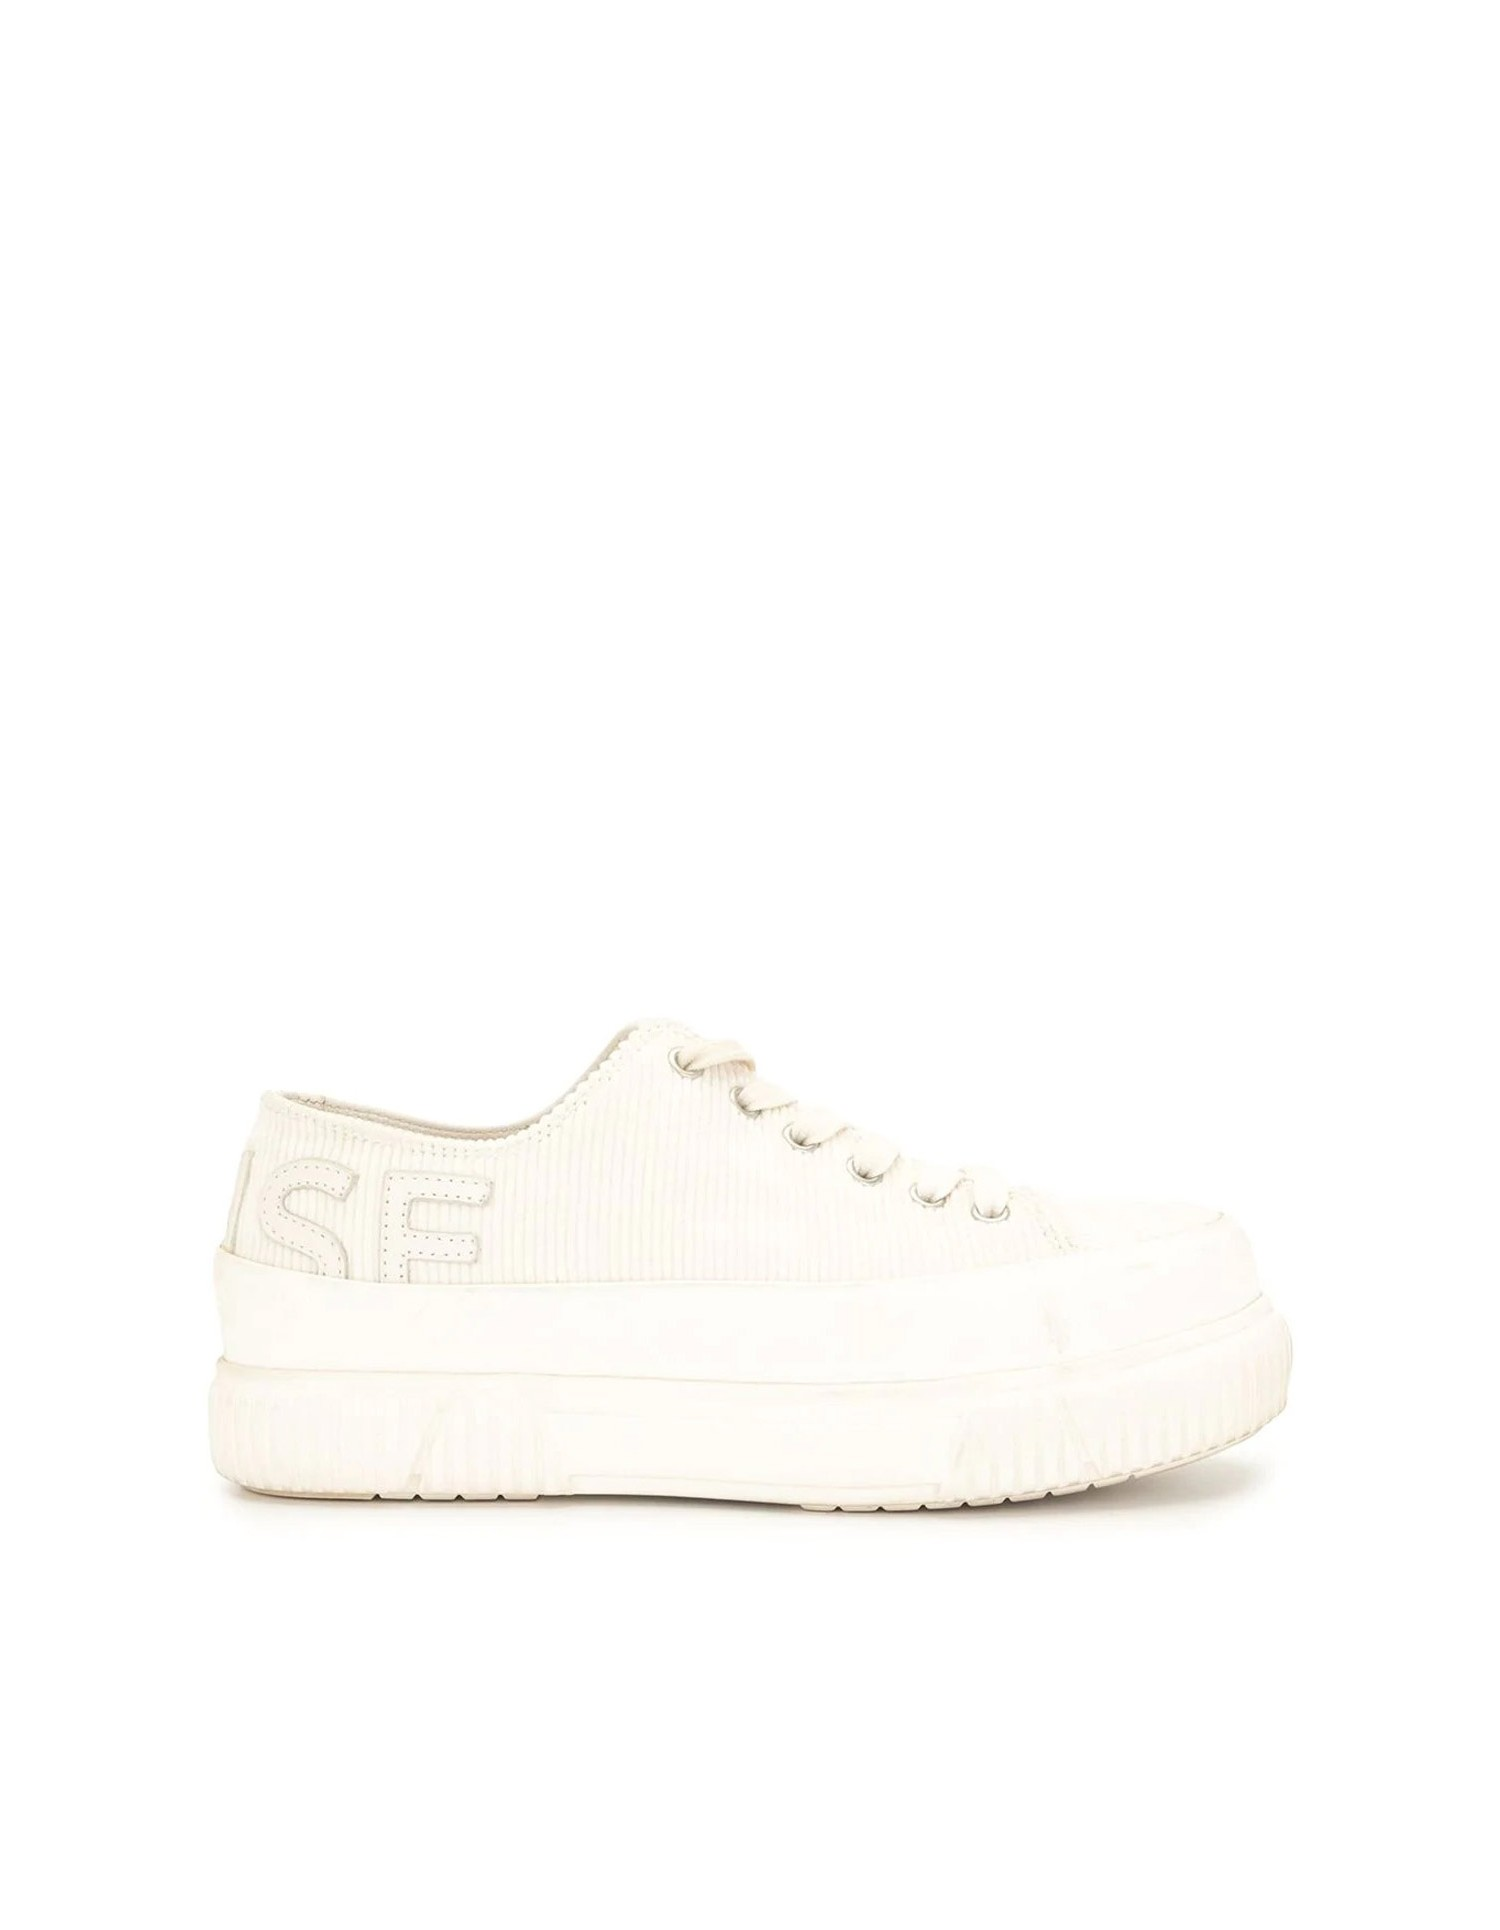 Both X MONSE Classic Platform Shoe in Ivory Angled Front View